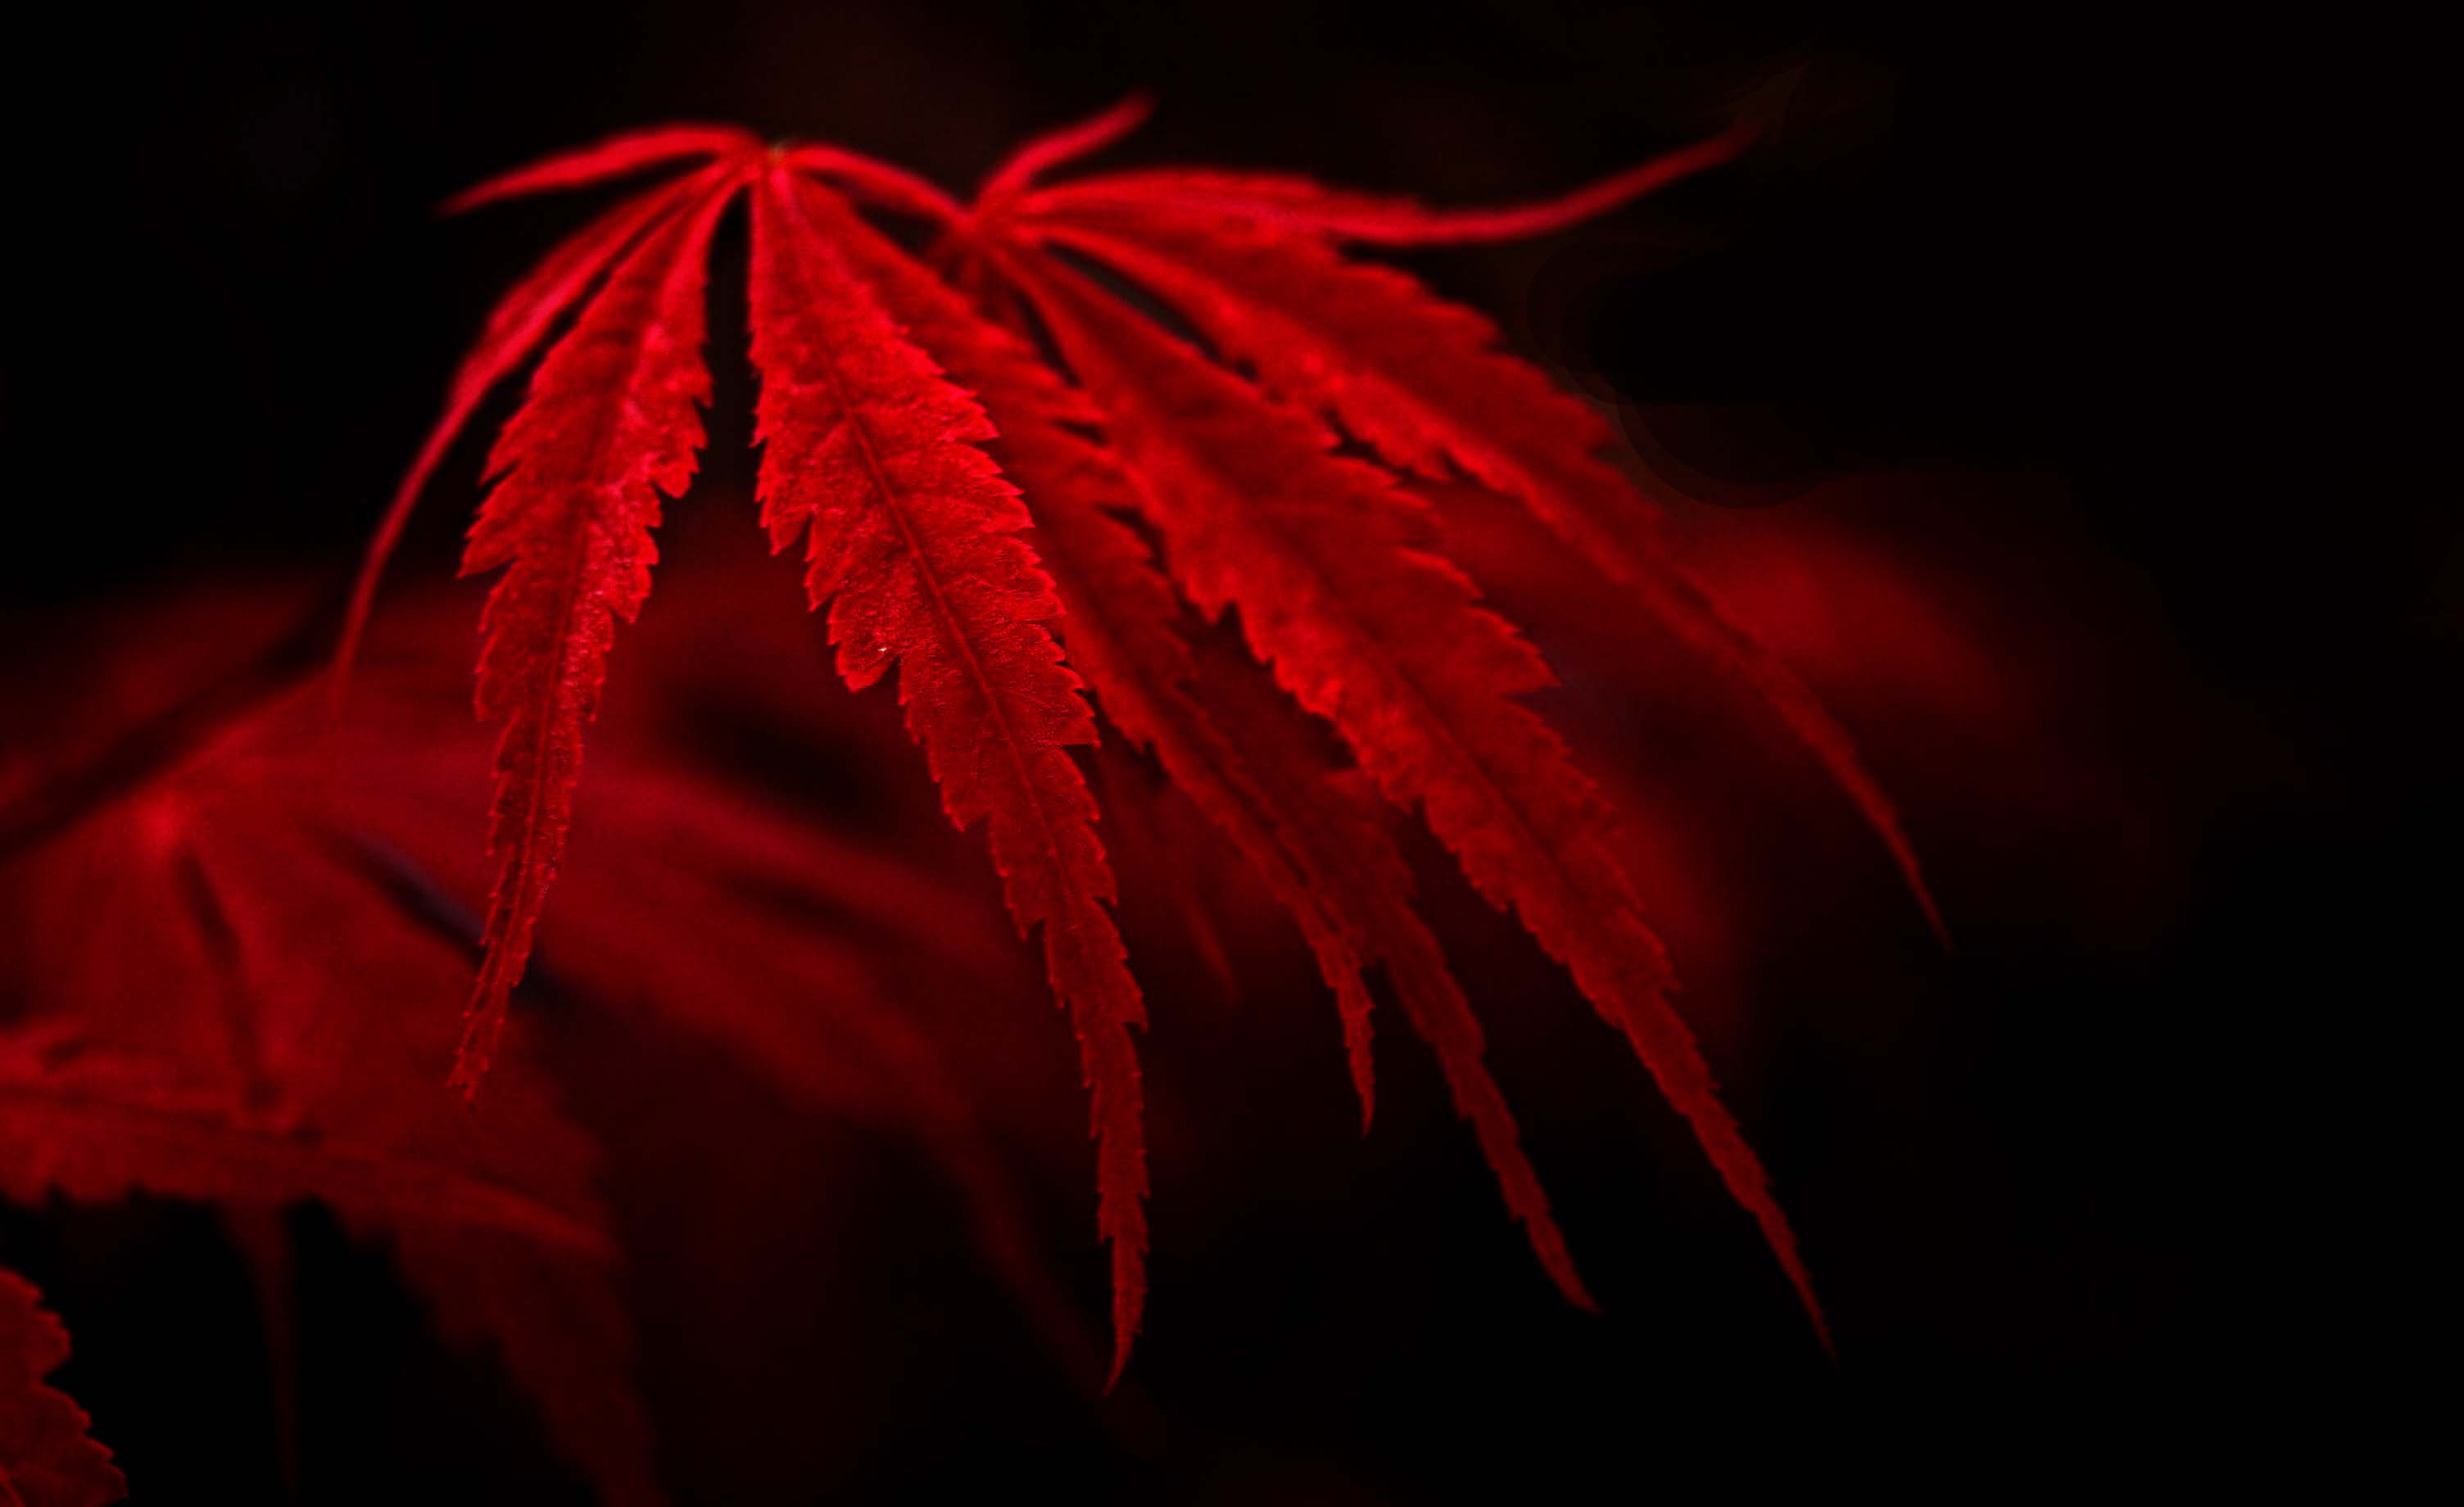 Red Leaves Wallpapers High Quality